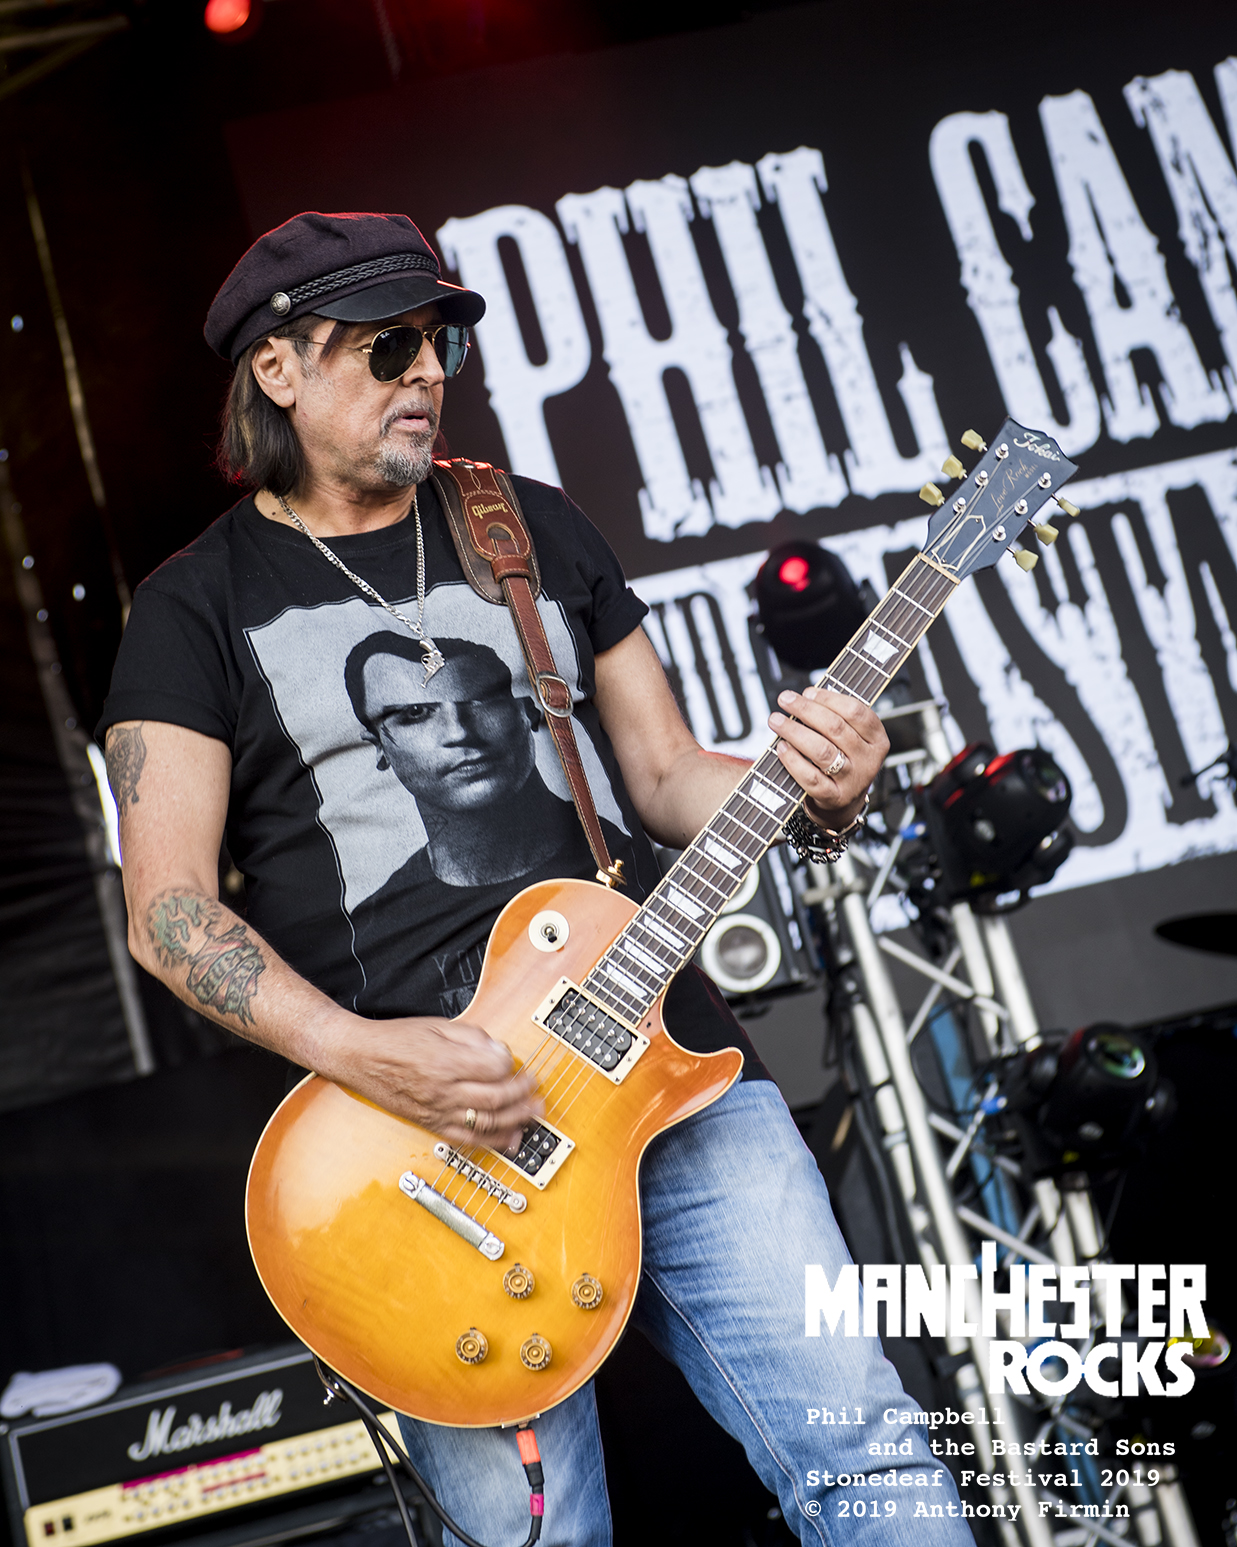 PhilCampbell-Stonedeaf-1029-small.jpg